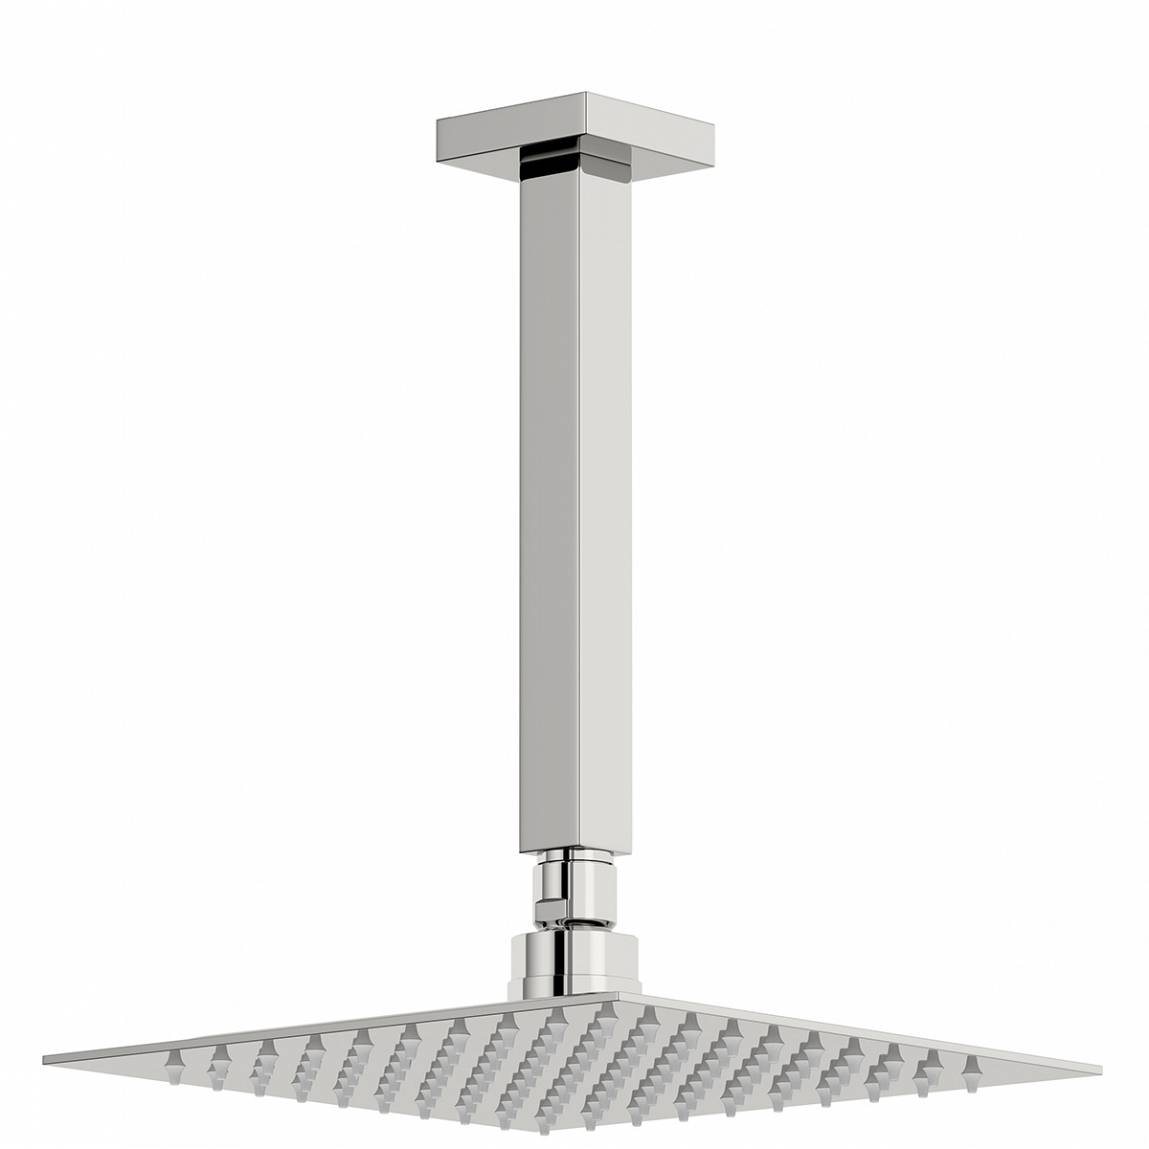 Image of Arcus 200mm Shower Head & Square Ceiling Arm